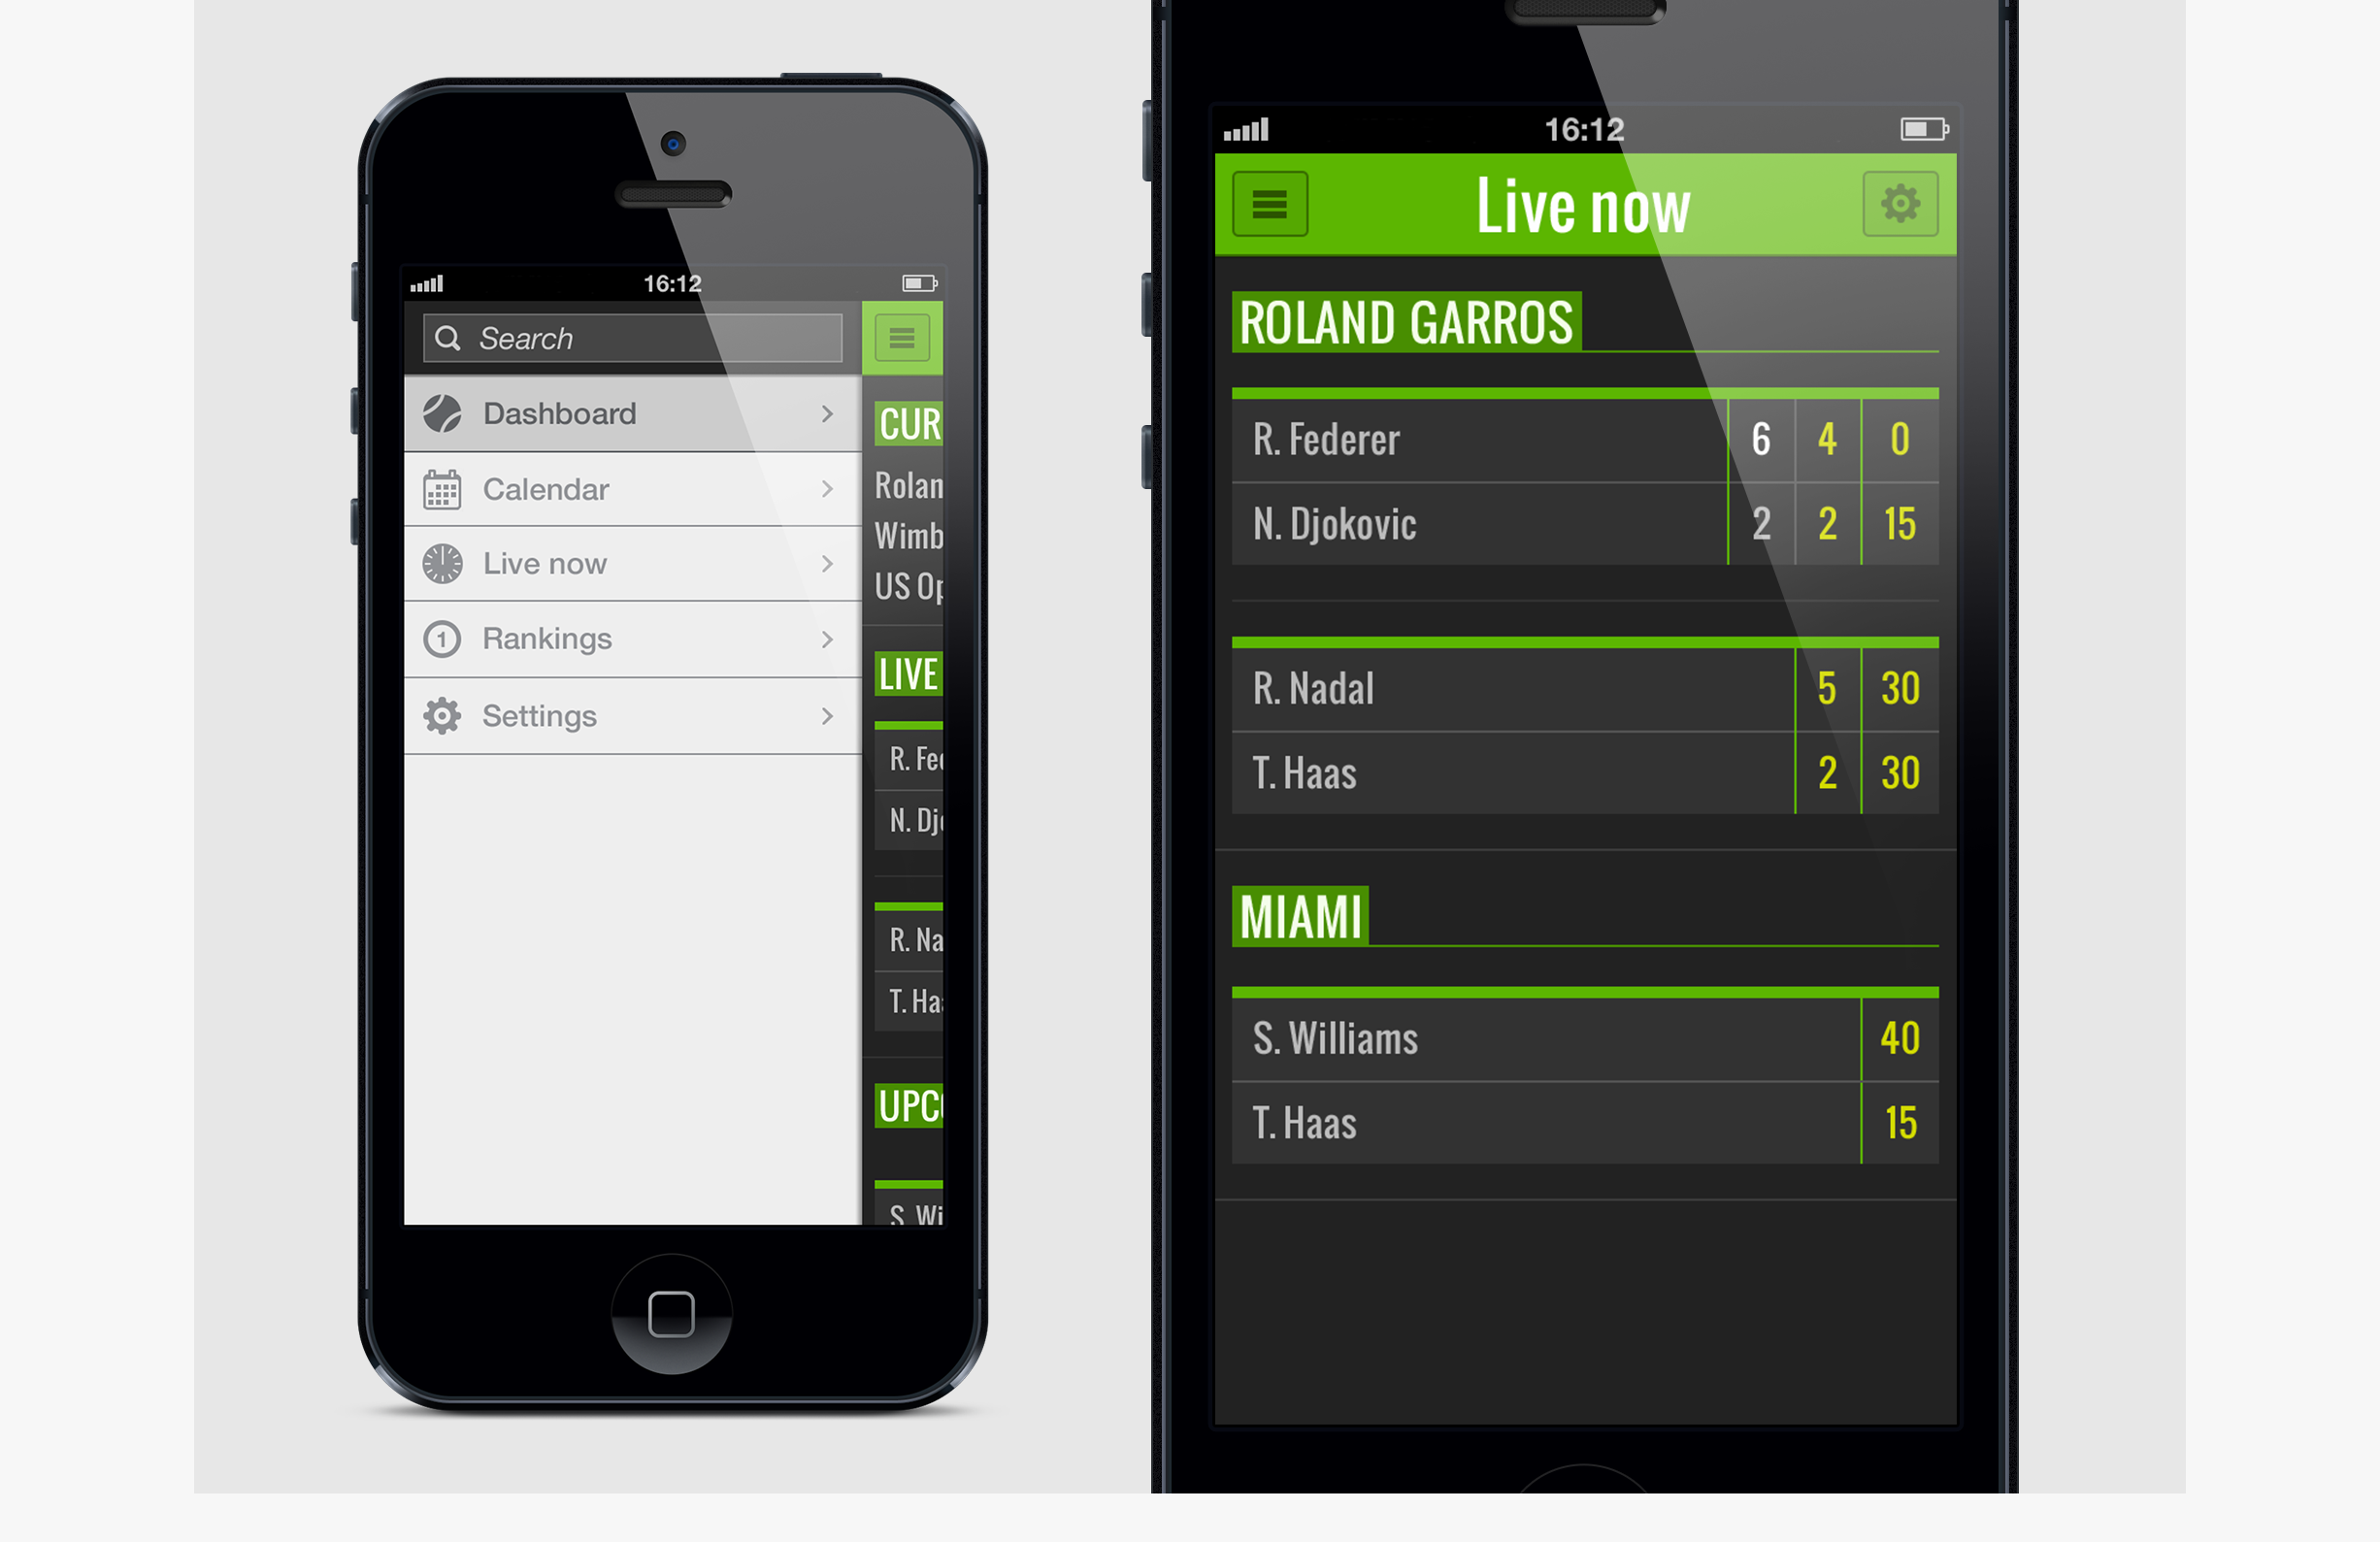 Tennis livescore - detail - live now - sidemenu